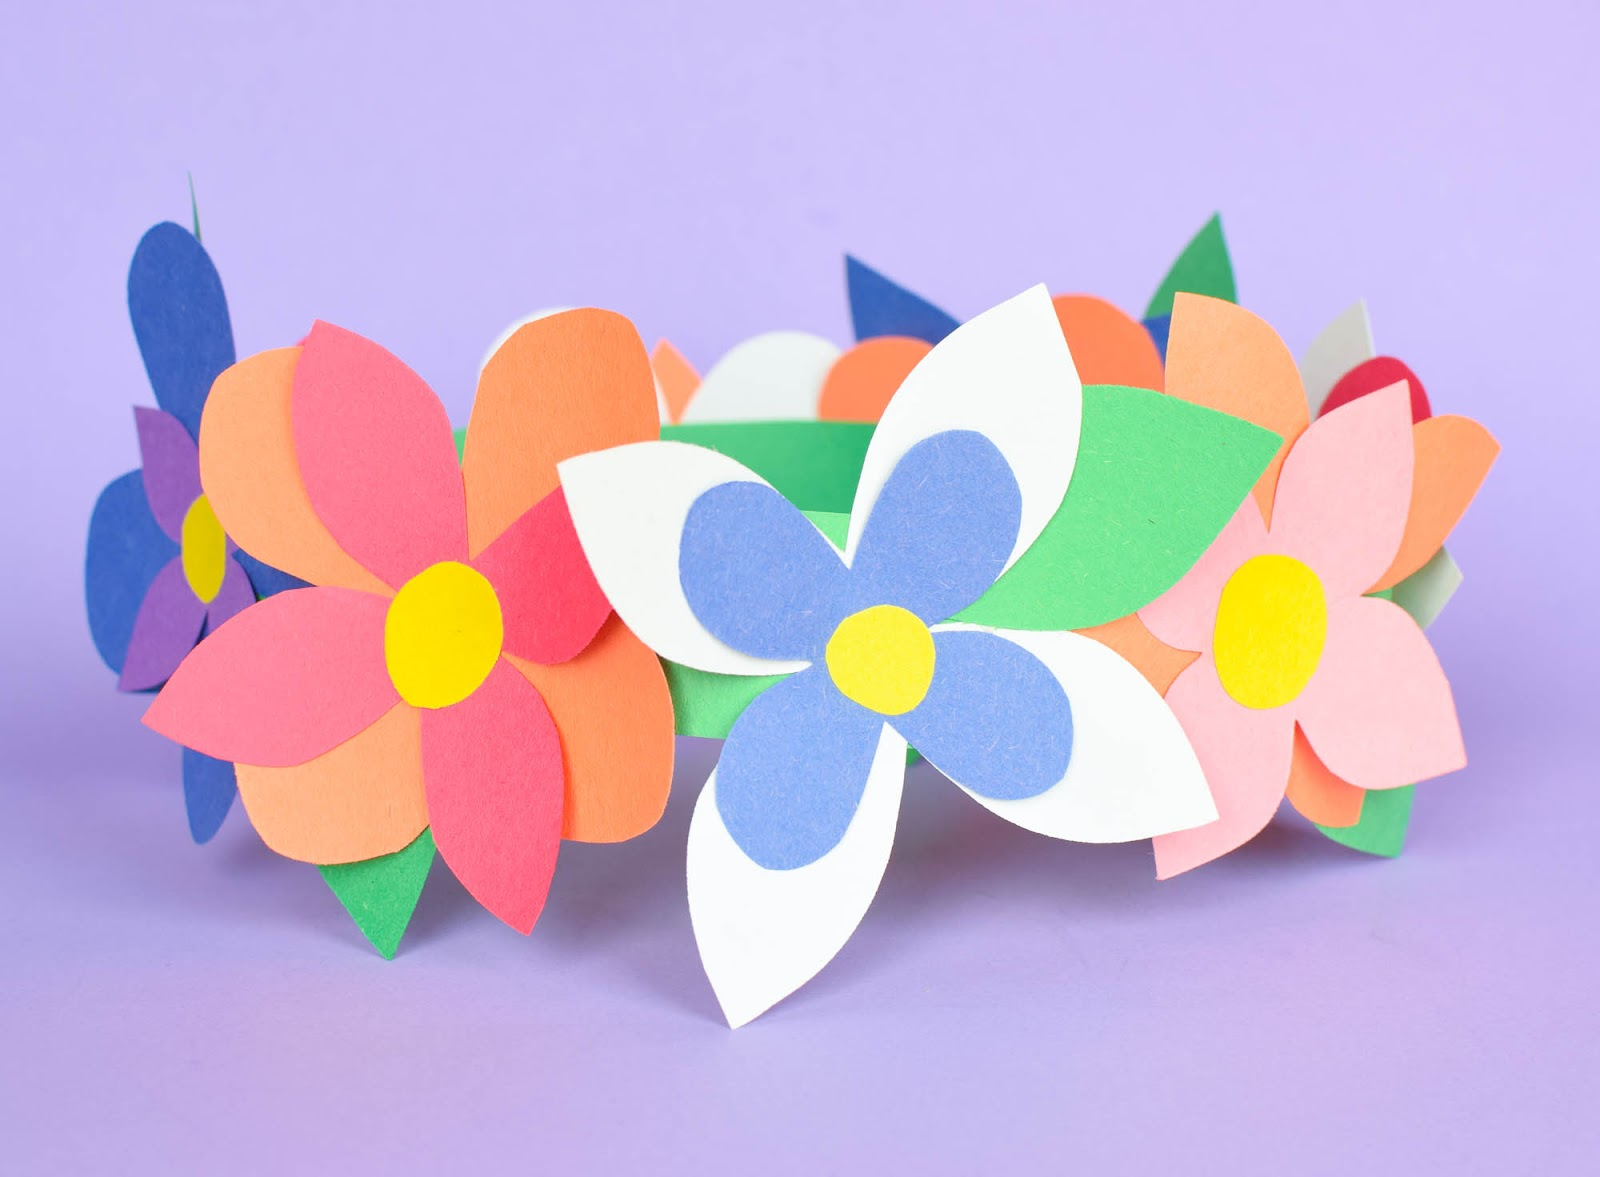 Flower crown spring craft what can we do with paper and glue flower crowns great easy spring craft for preschool kindergarten or elementary kids mightylinksfo